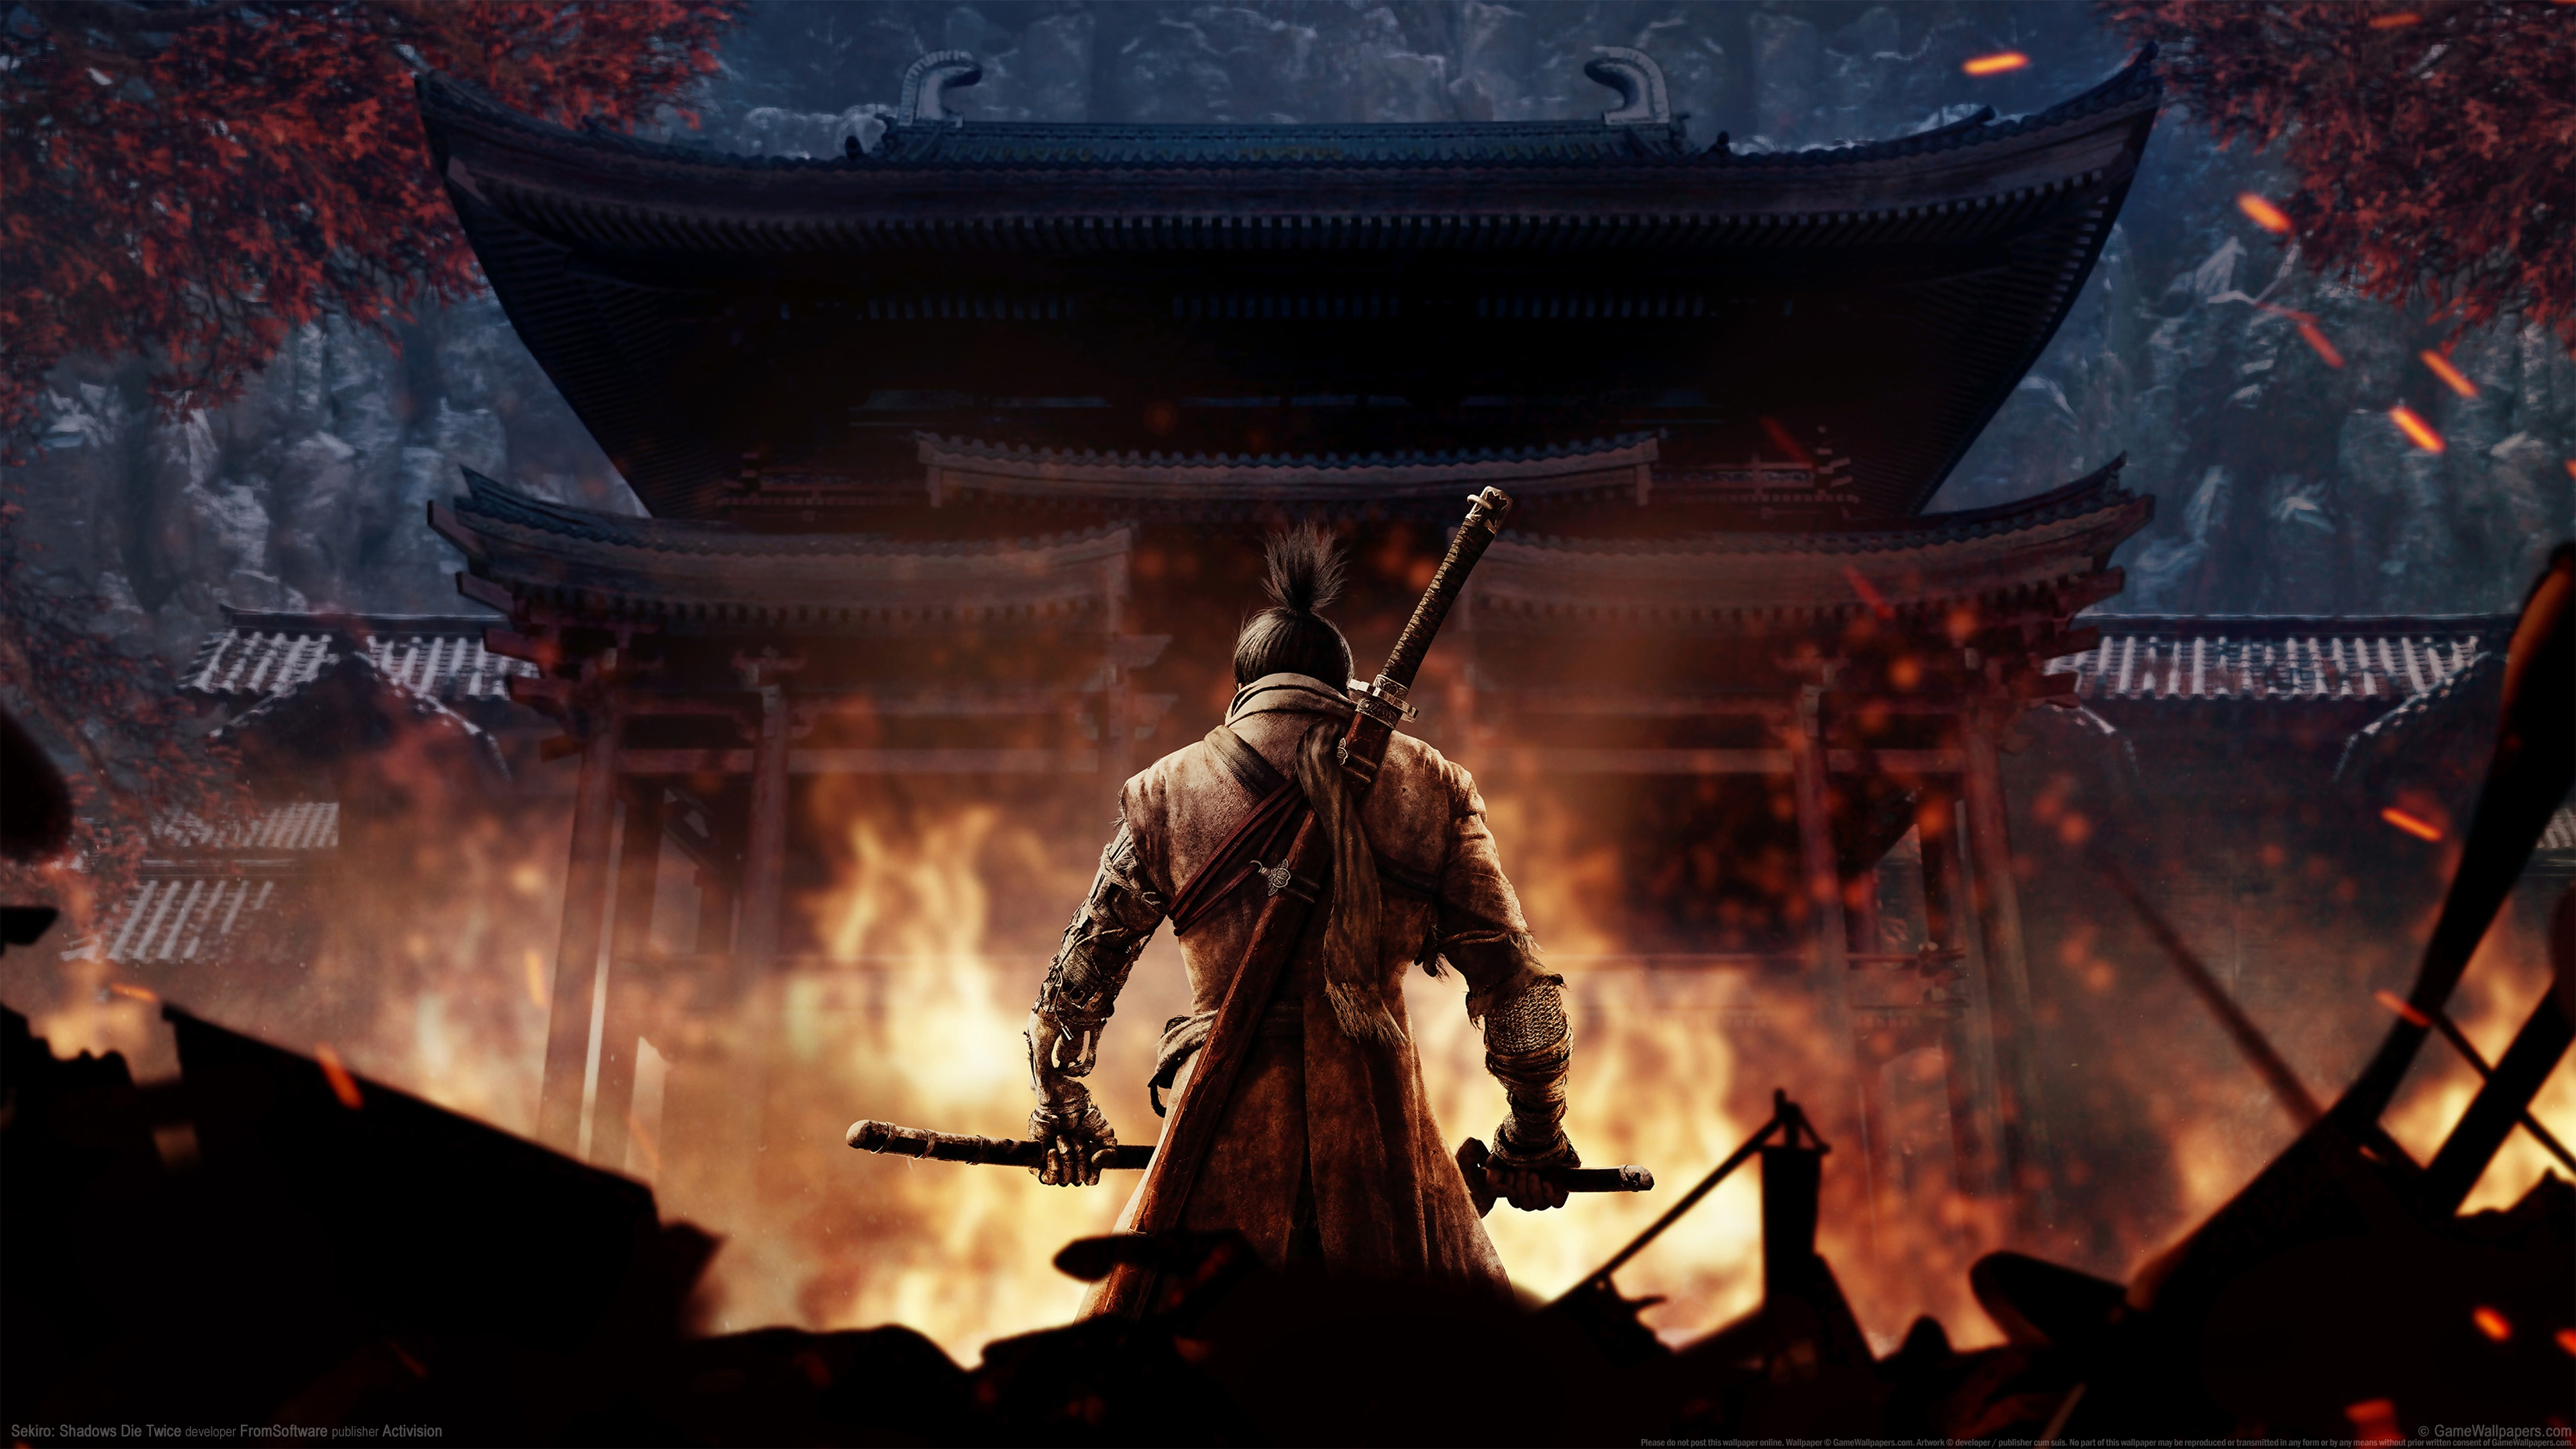 General 3840x2160 Sekiro: Shadows Die Twice samurai video games video game art watermarked